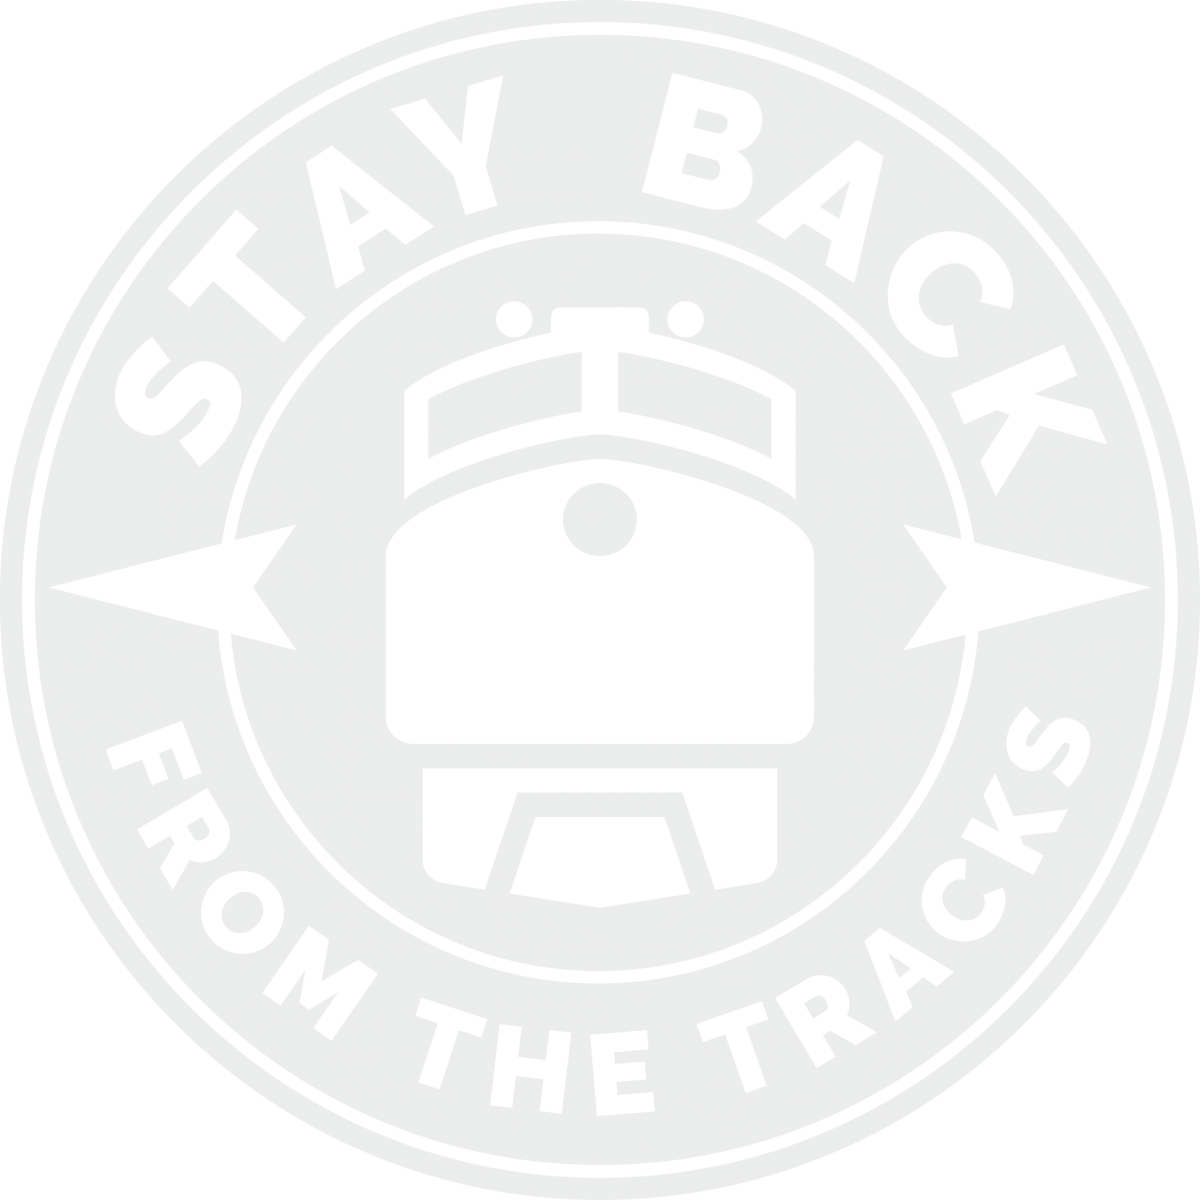 stay-back-stamp